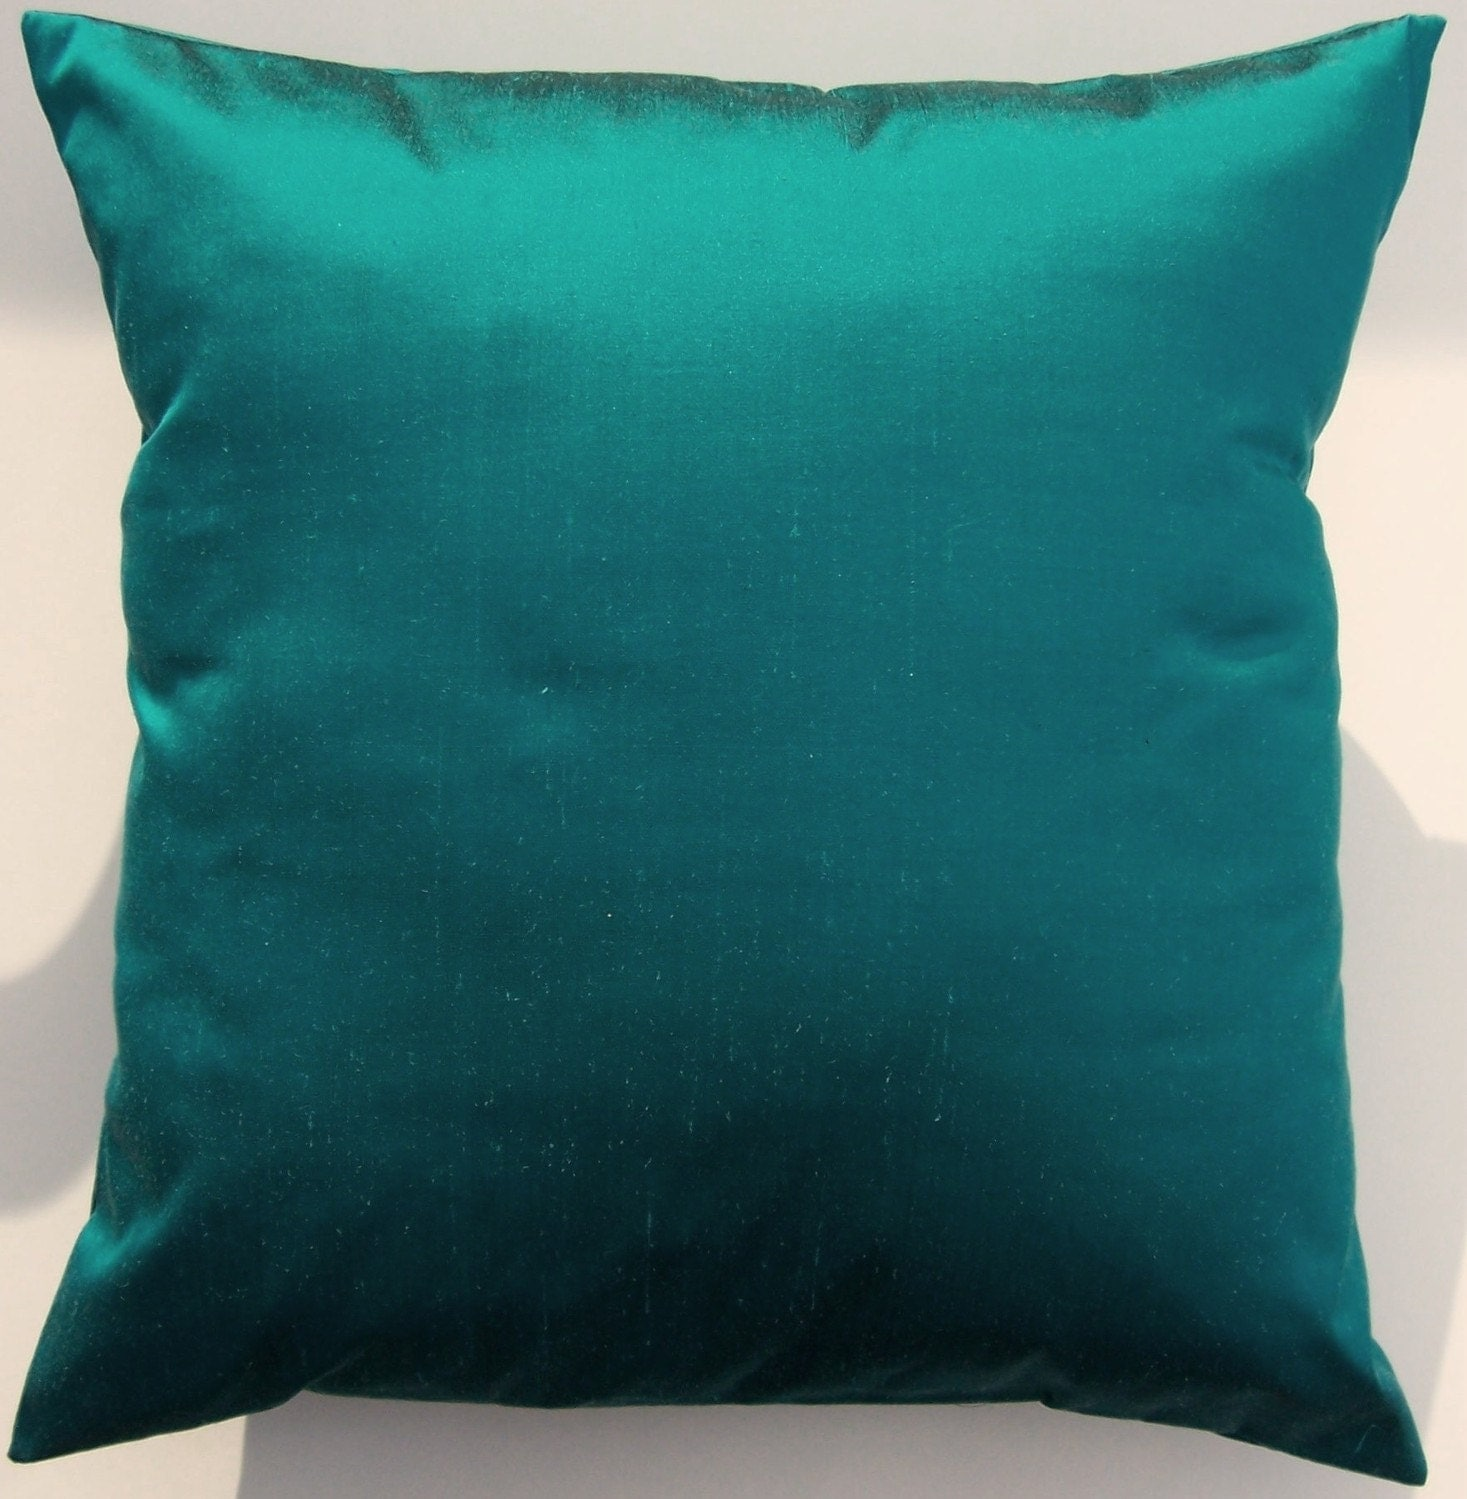 Teal Throw Pillow Cover Simply Silk Teal by sassypillows on Etsy